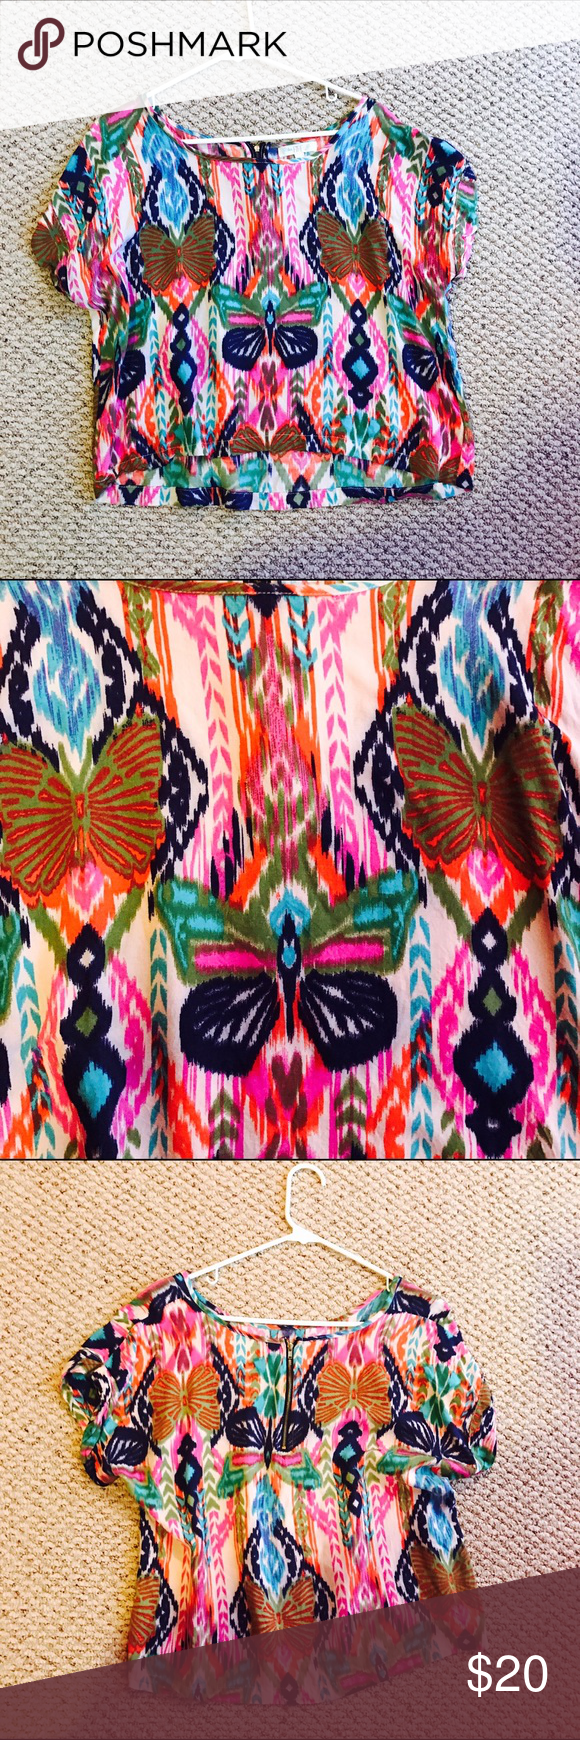 Colorful Blouse NWOT Tops Blouses